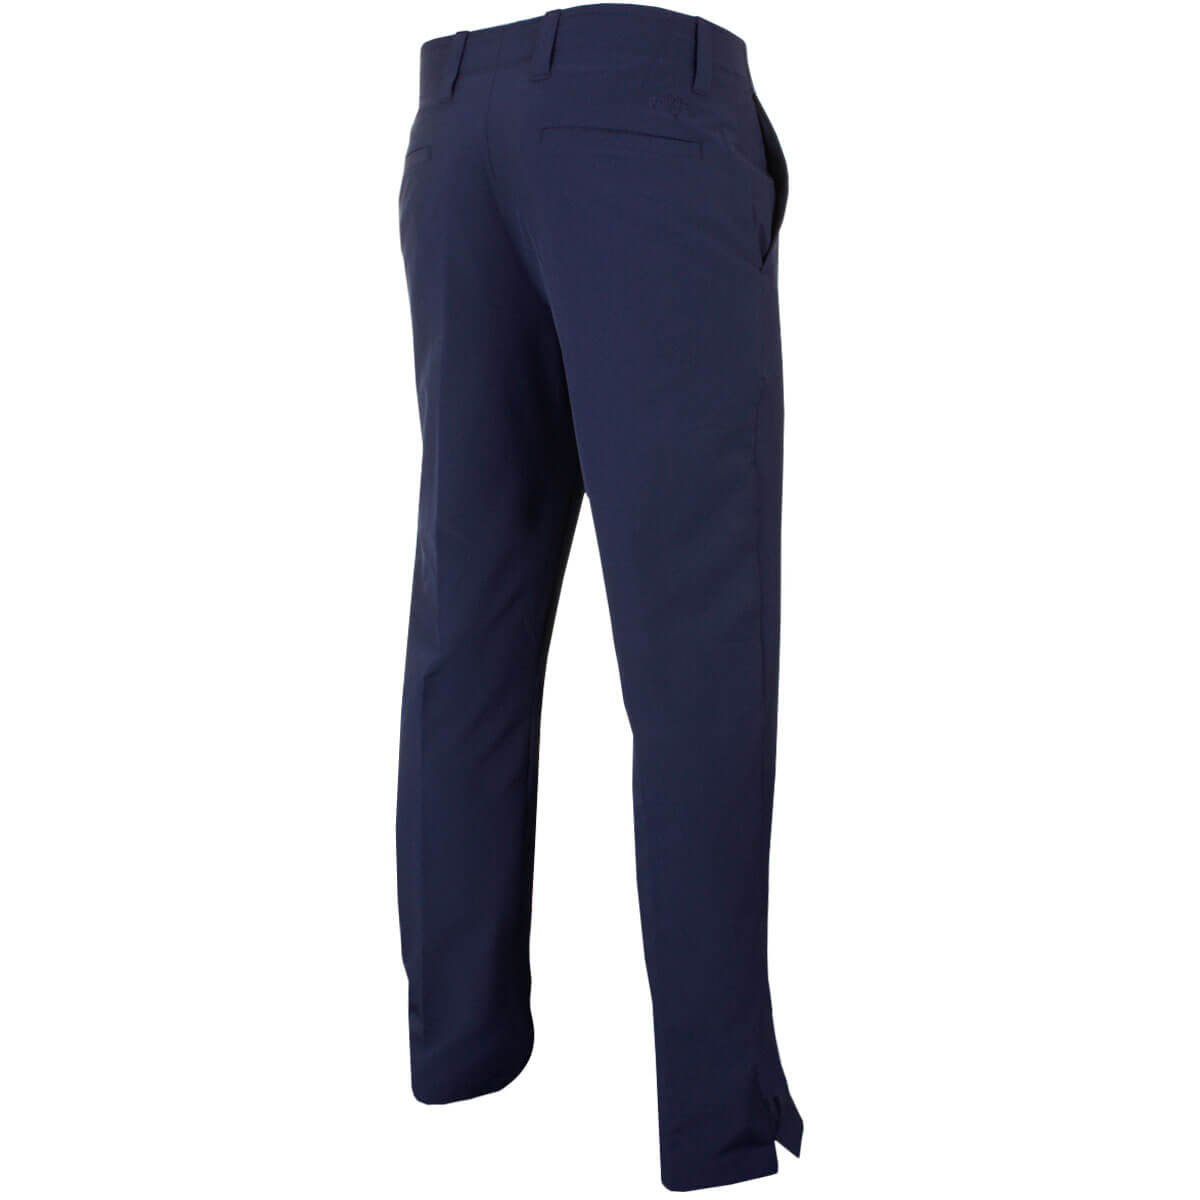 Callaway-Golf-Mens-2020-Chev-Tech-II-Lightweight-Golf-Trousers-27-OFF-RRP thumbnail 10